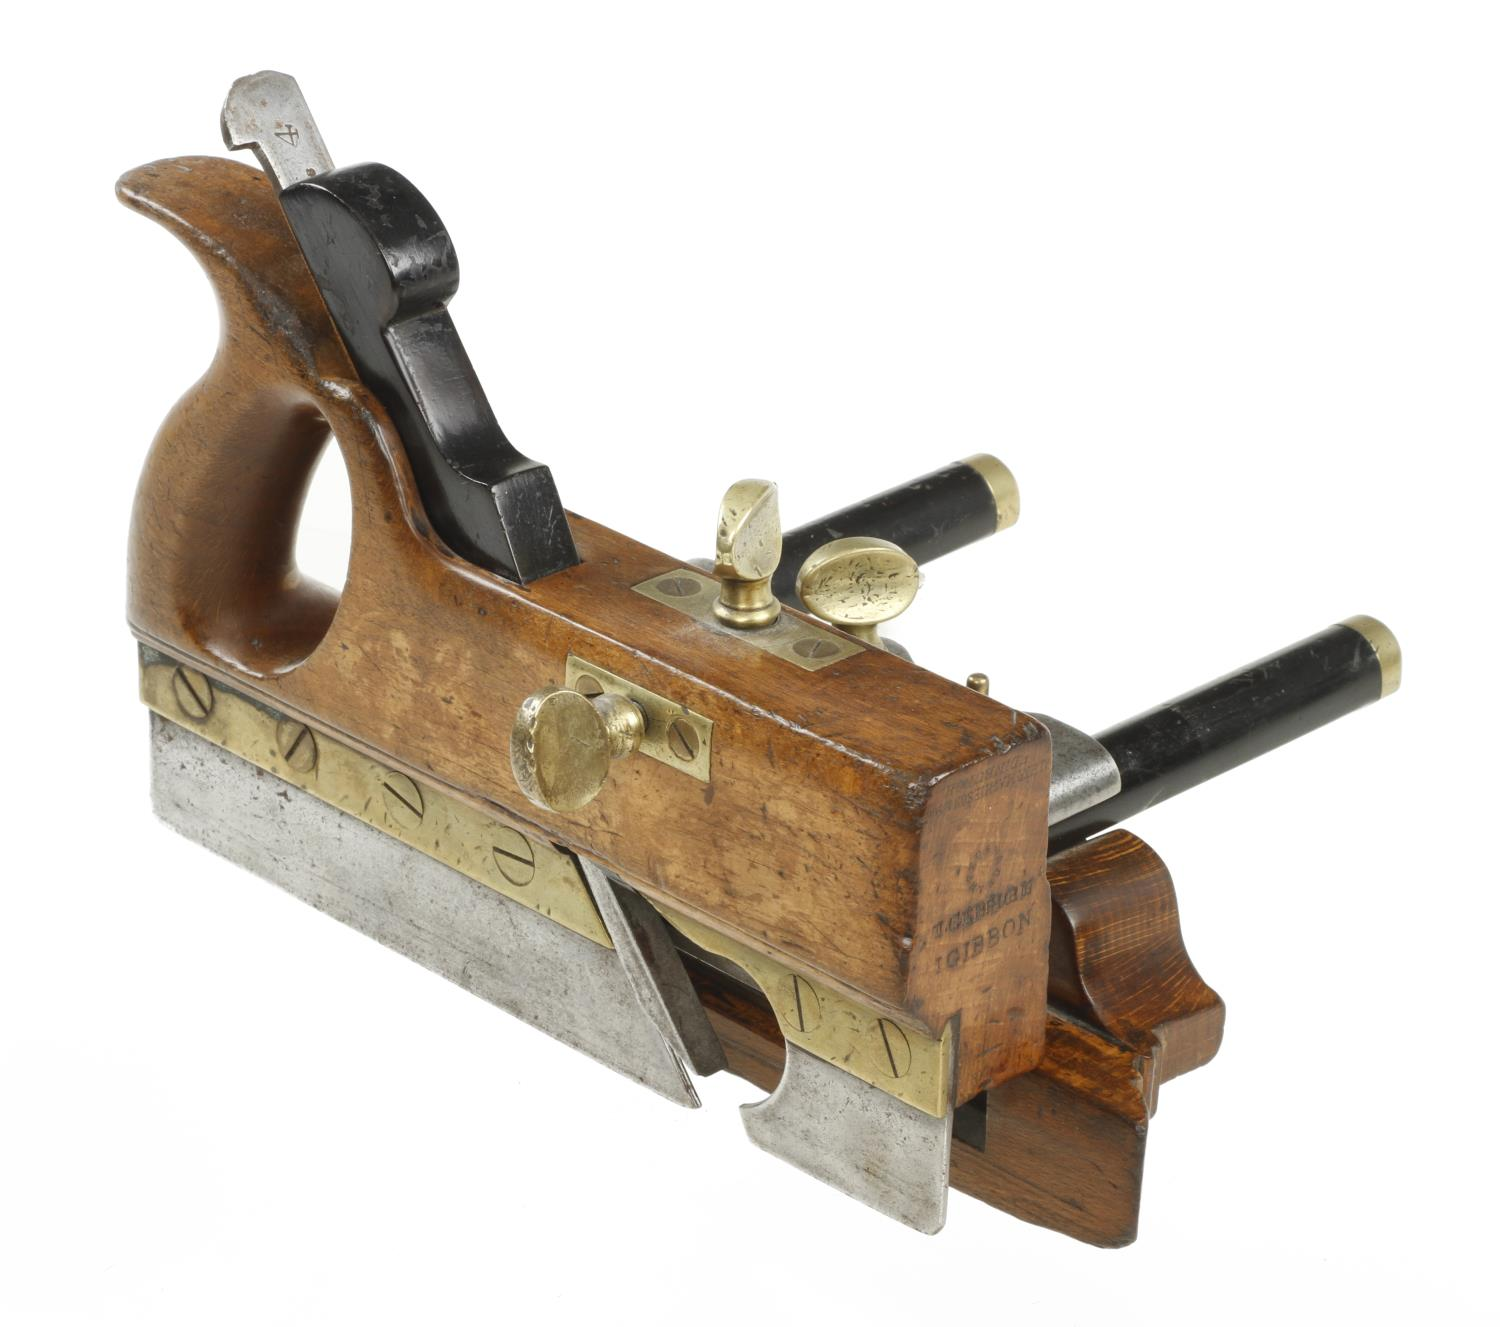 A MATHIESON No 11 handled bridle plough with ebony stems and probably replaced ebony wedge G+ - Image 3 of 3